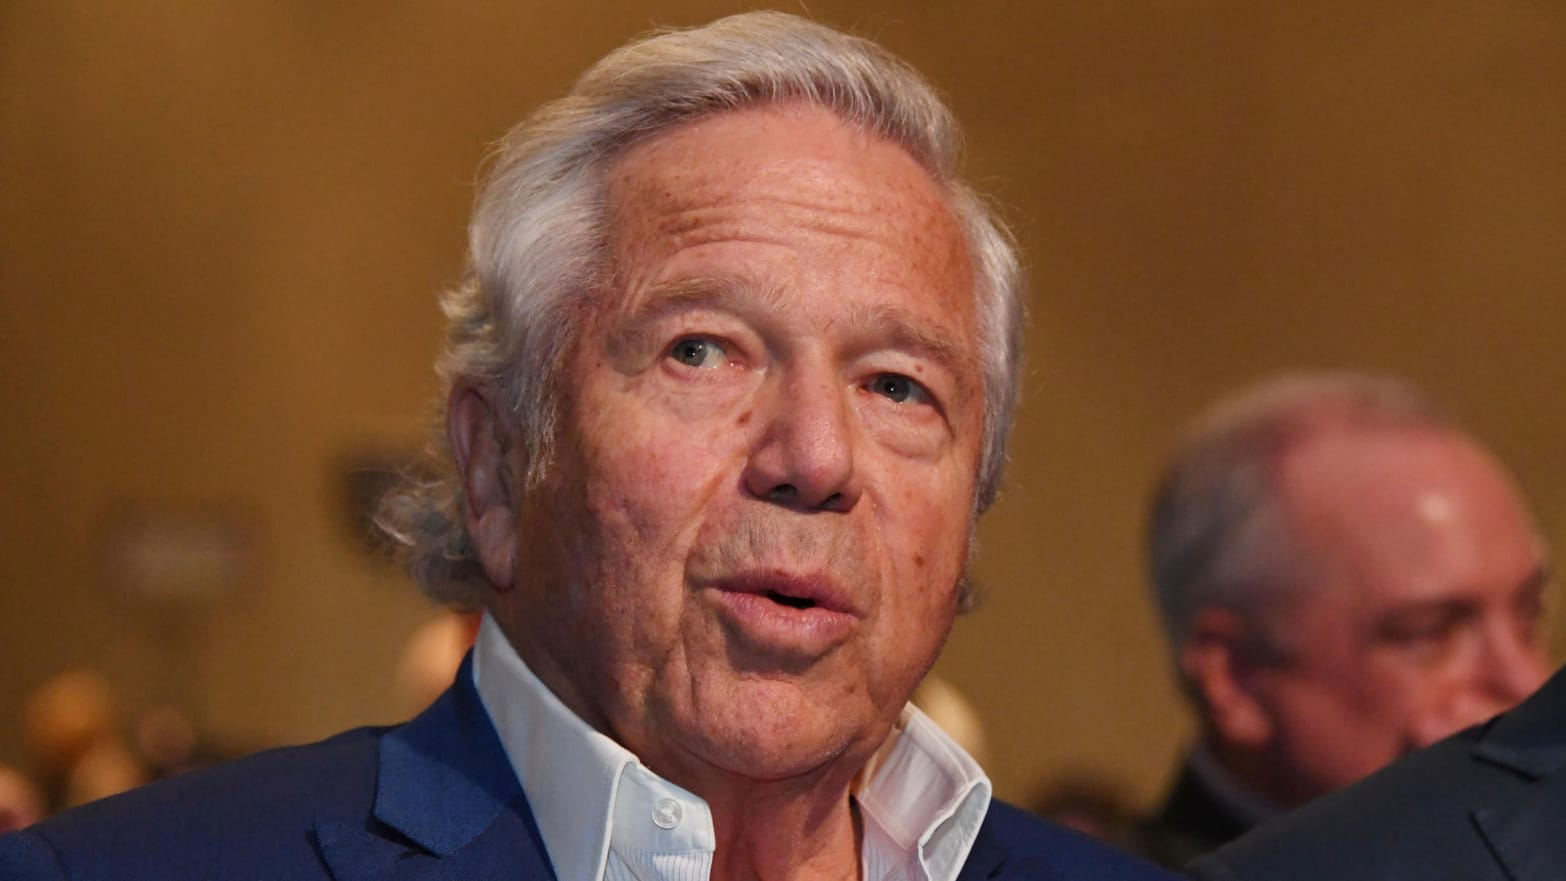 Robert Kraft Is Just One of Many Rich and Powerful Men Busted in Florida Prostitution Ring